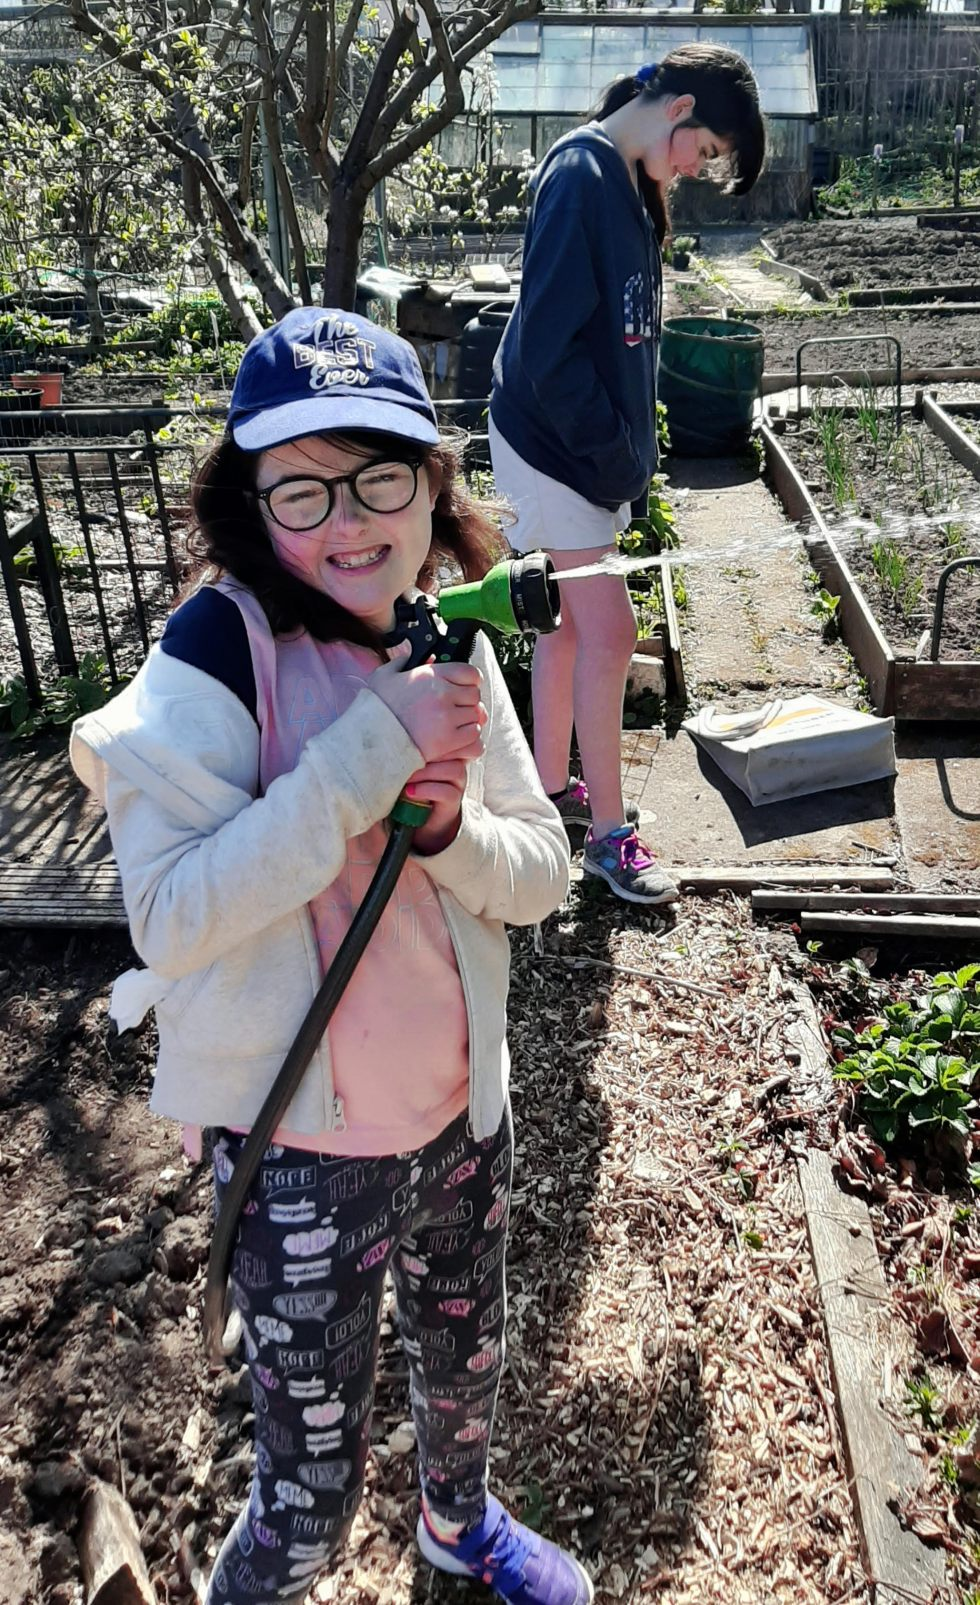 two girls on an allotment; one playing with a water gun hose attachment